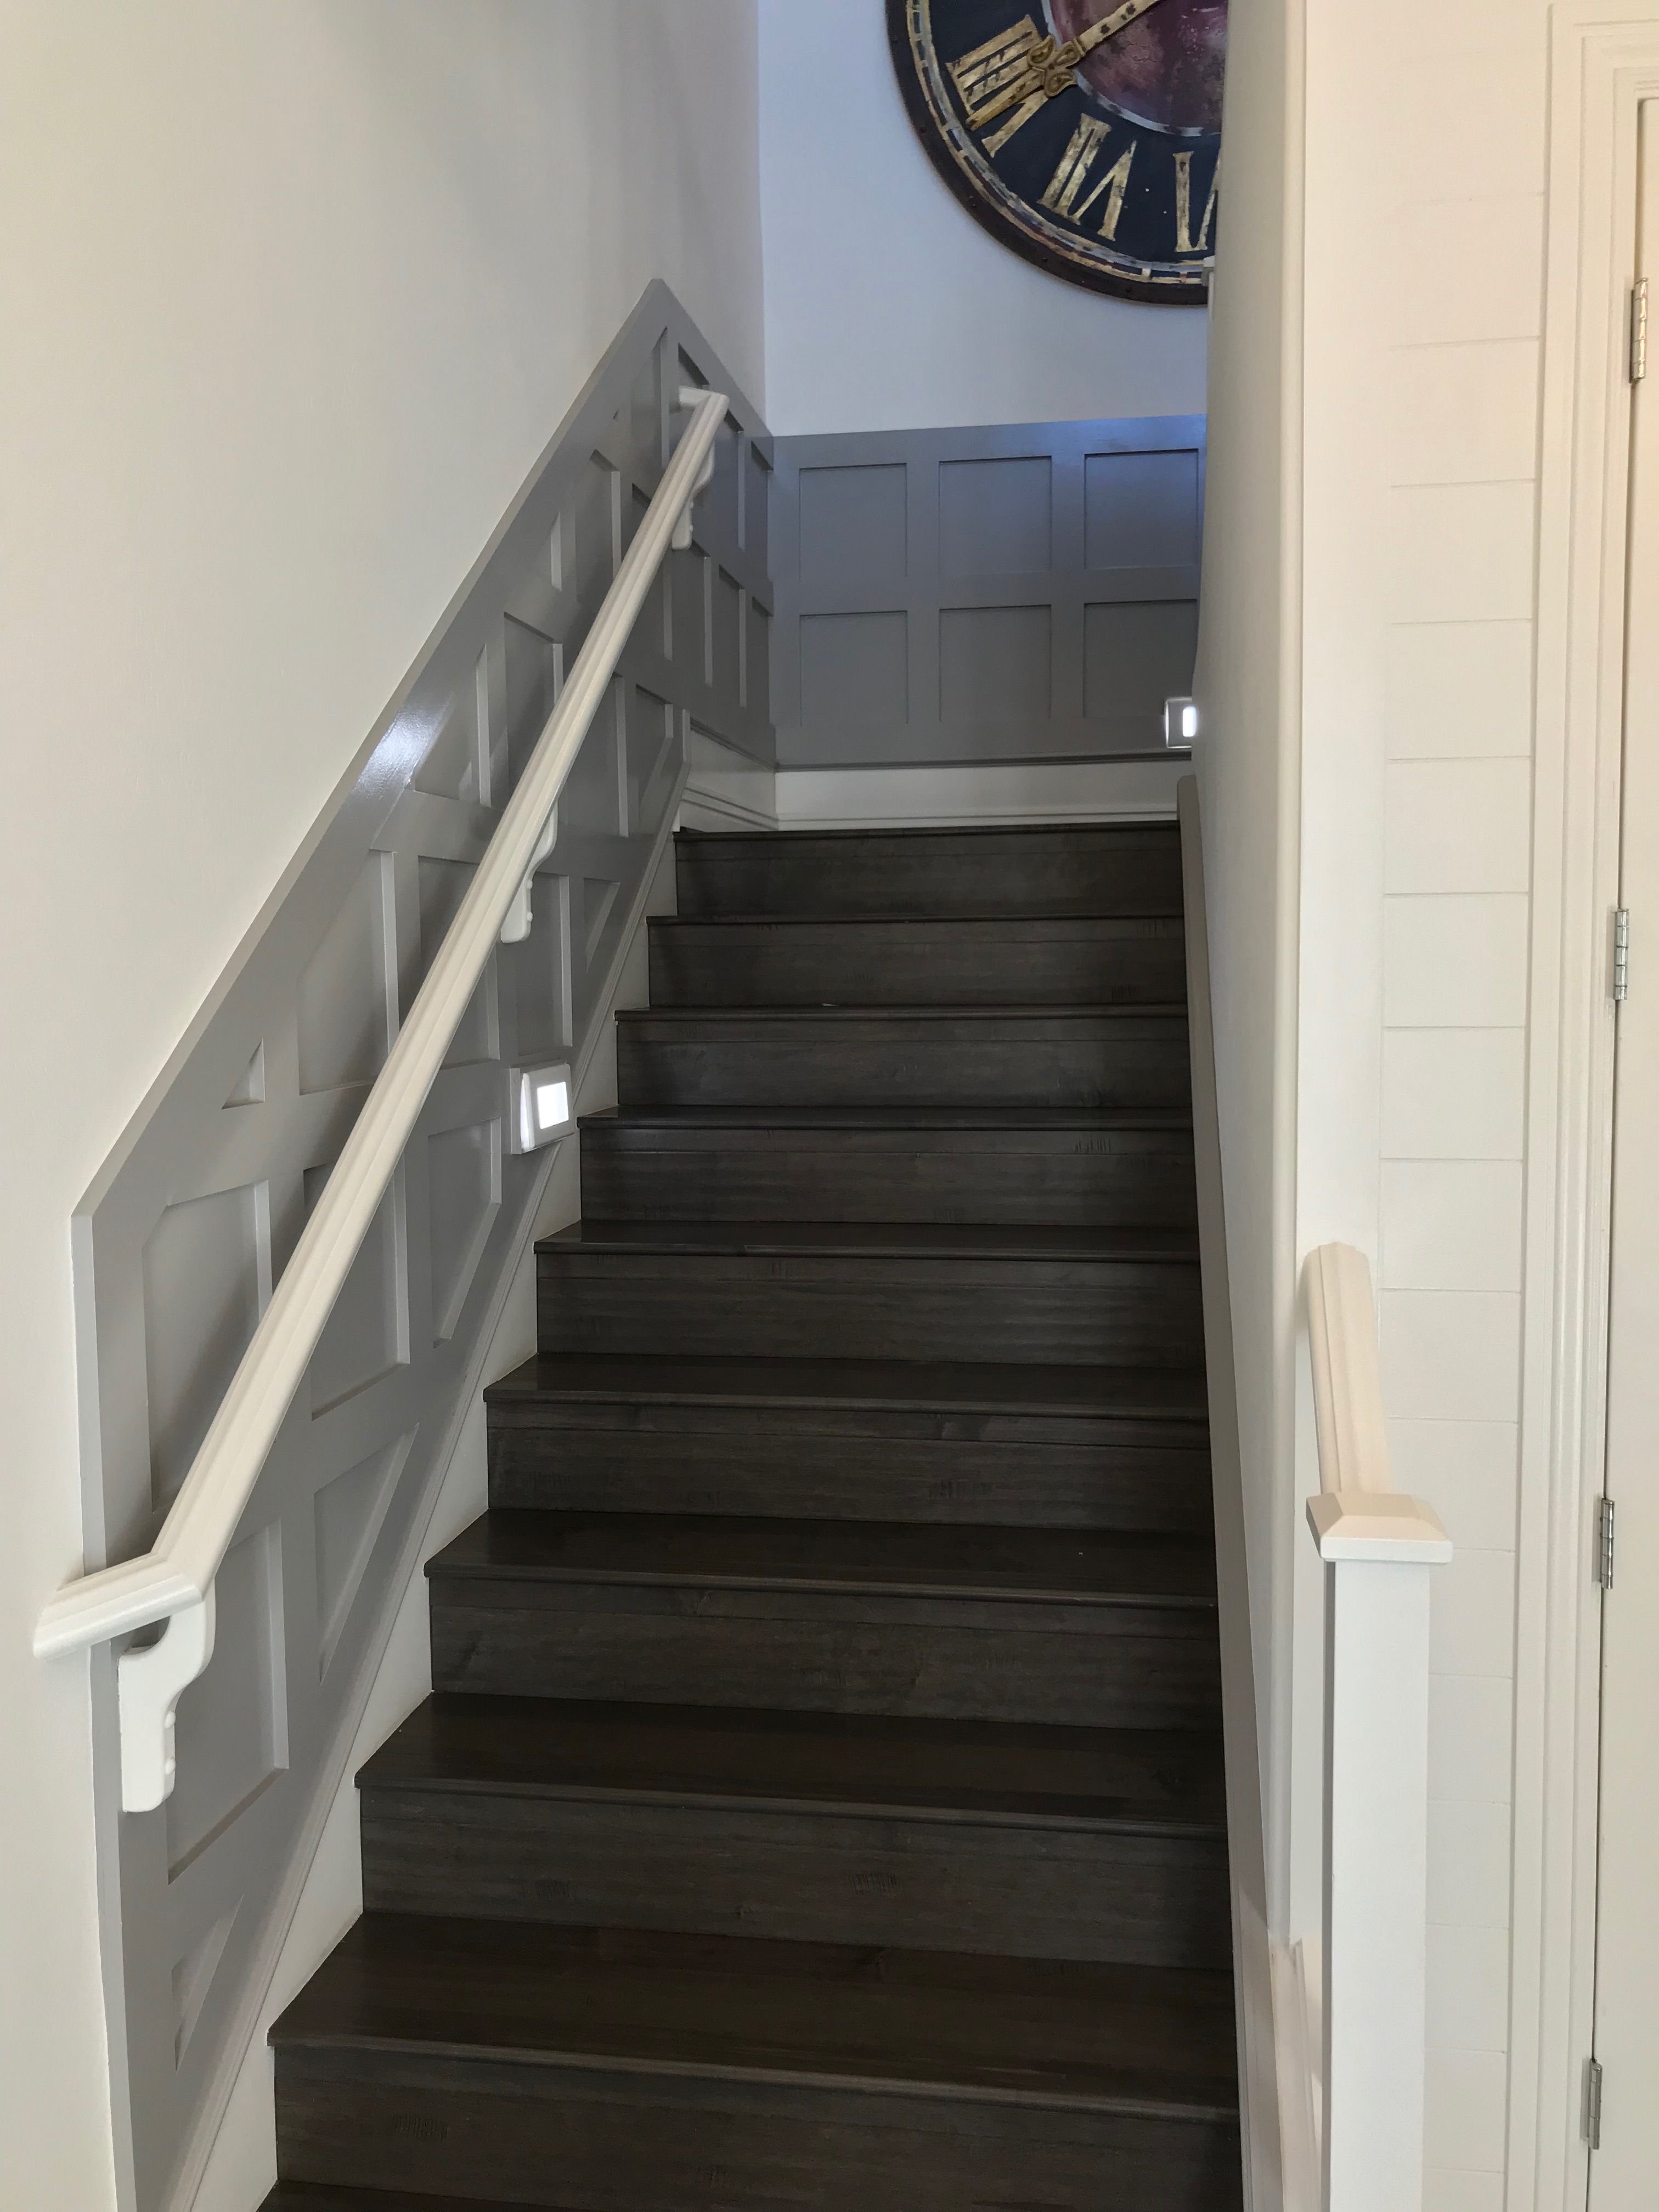 This Wall Treatment Definitely Showcases The Stairs Great Idea To